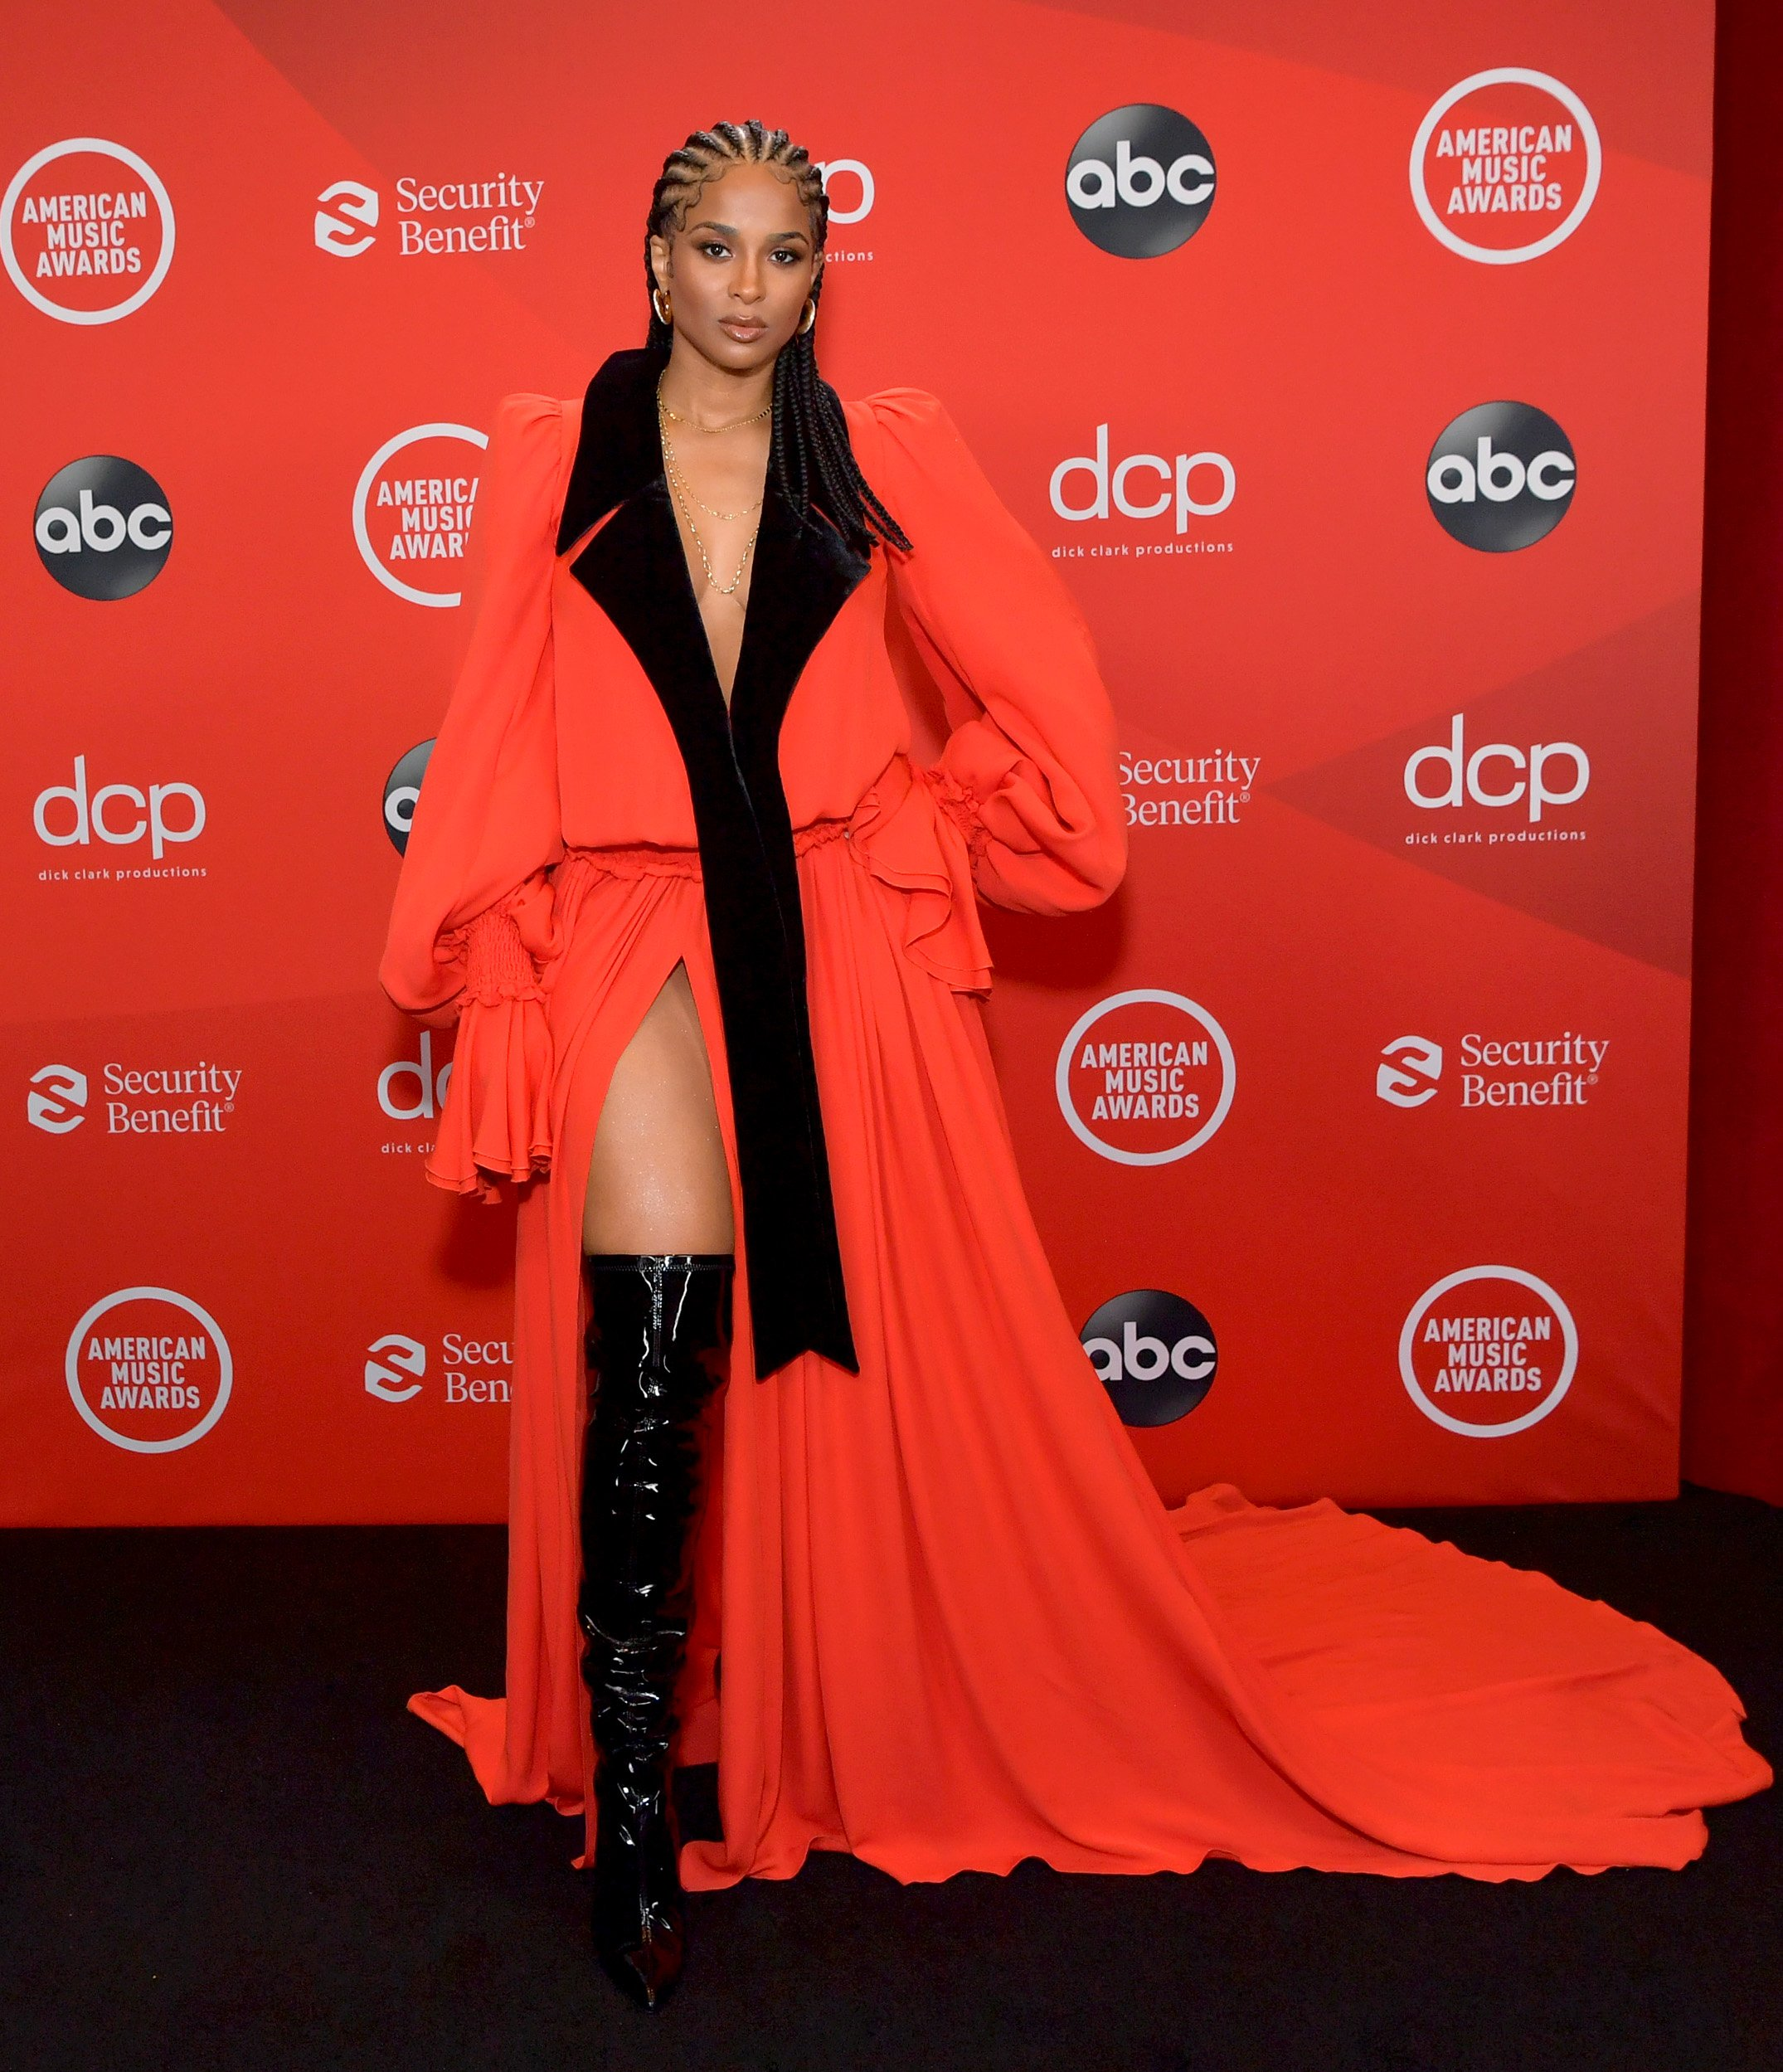 Ciara at the 2020 American Music Awards at Microsoft Theater on November 22, 2020 in Los Angeles, California.| Source: Getty Images